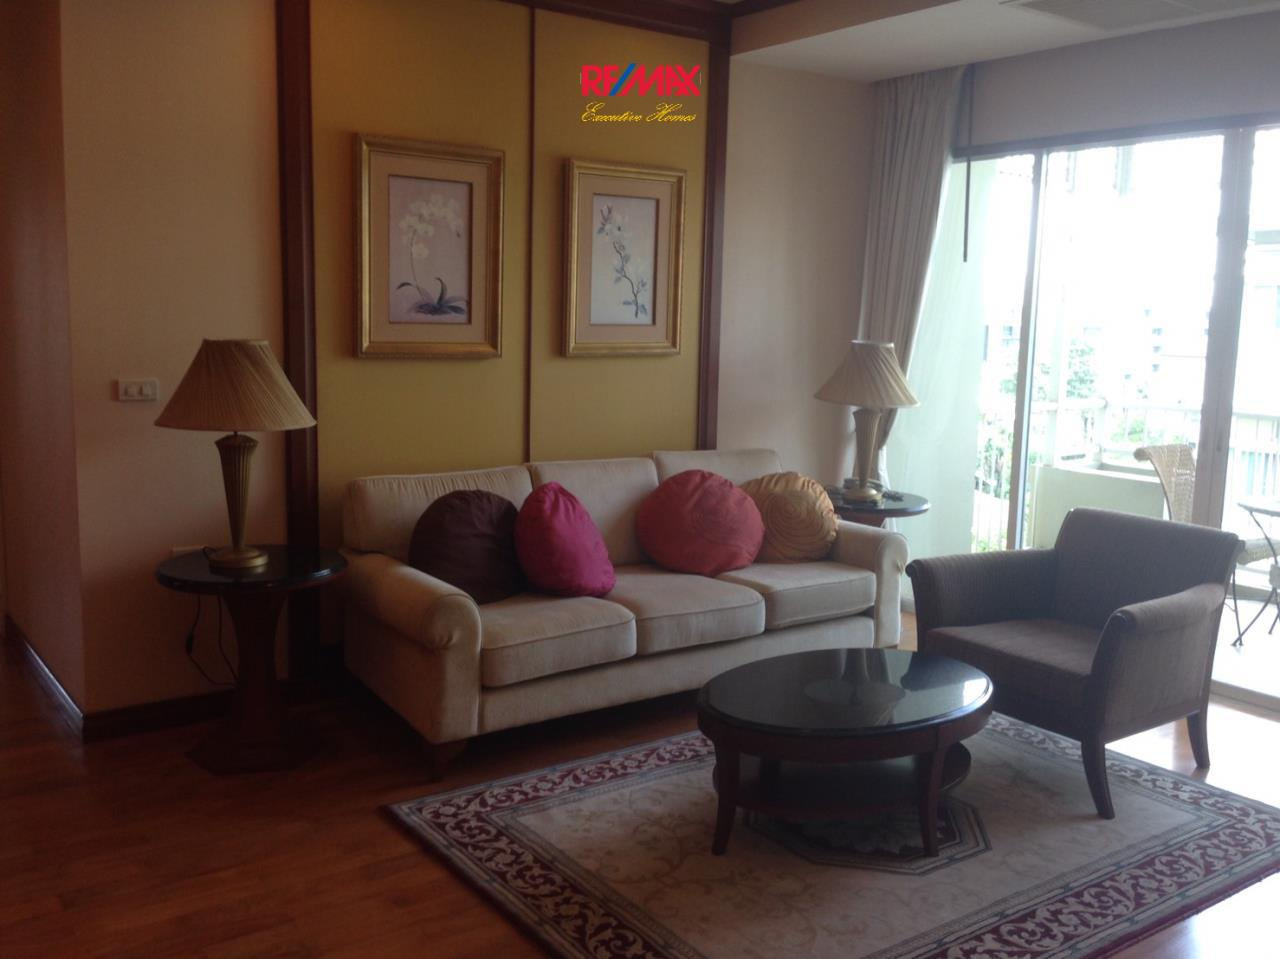 RE/MAX Executive Homes Agency's Spacious 2 Bedroom for Rent The Bangkok 43 1